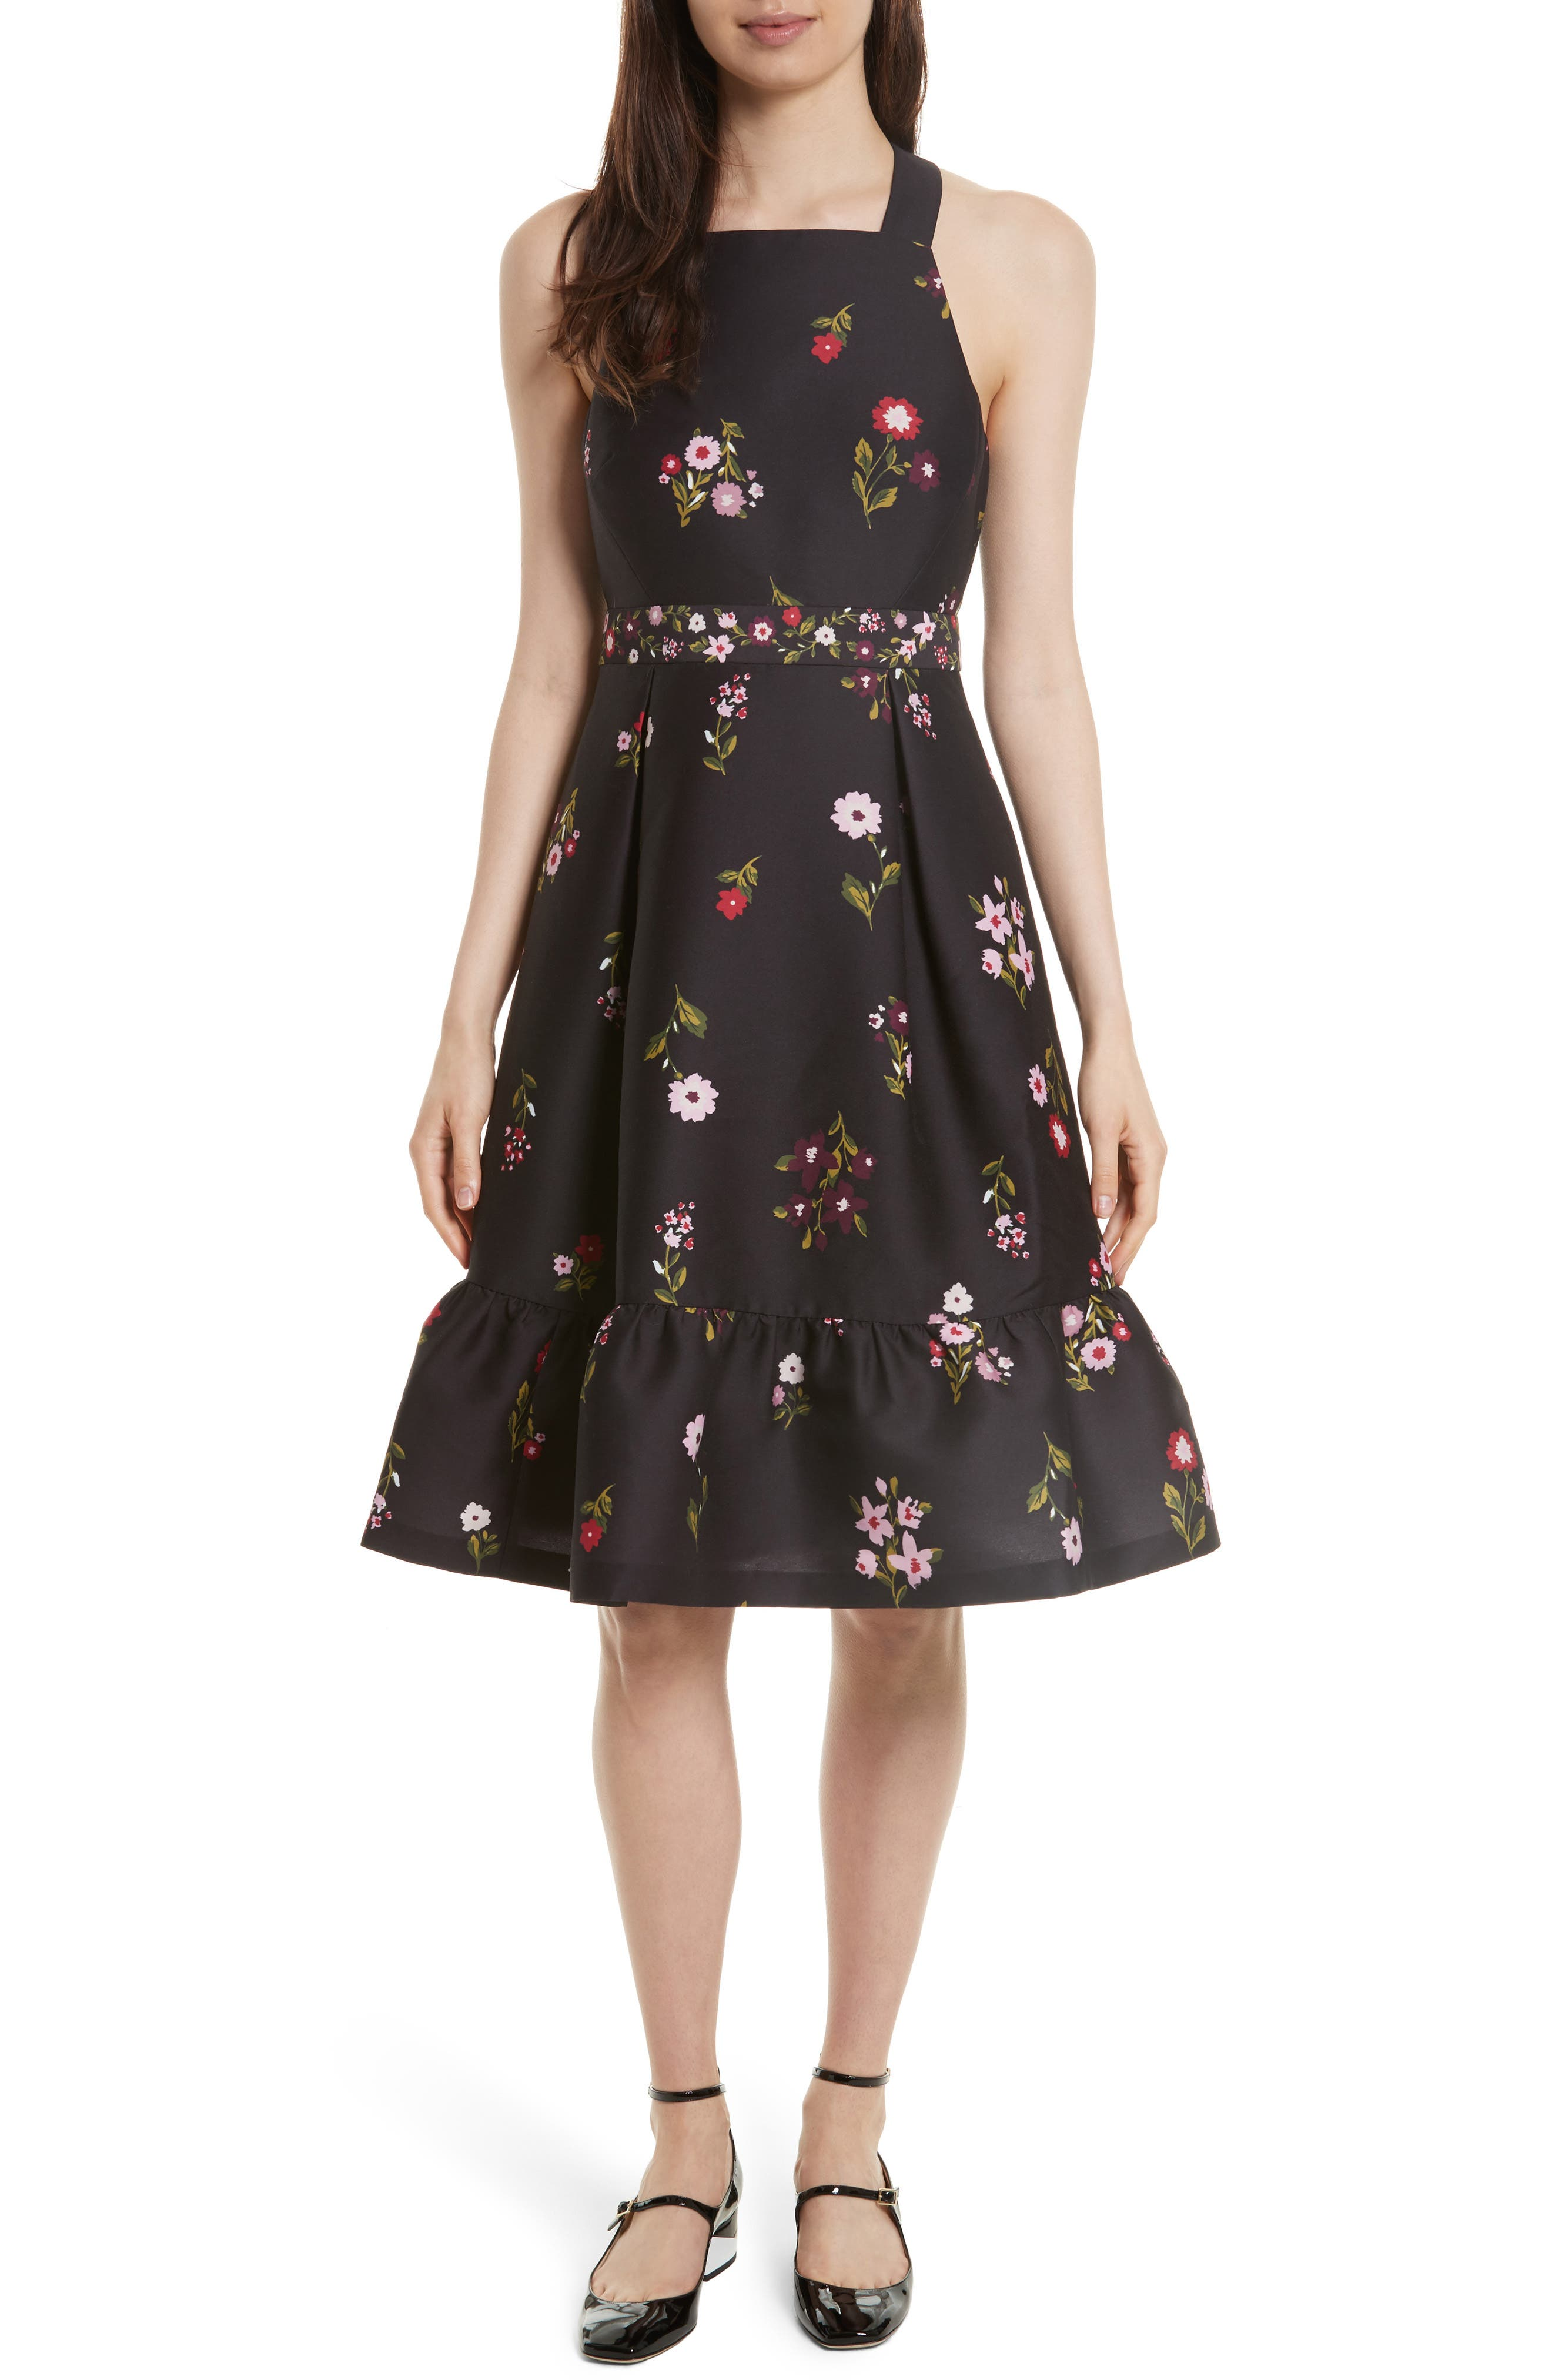 in bloom fit & flare dress,                             Main thumbnail 1, color,                             006